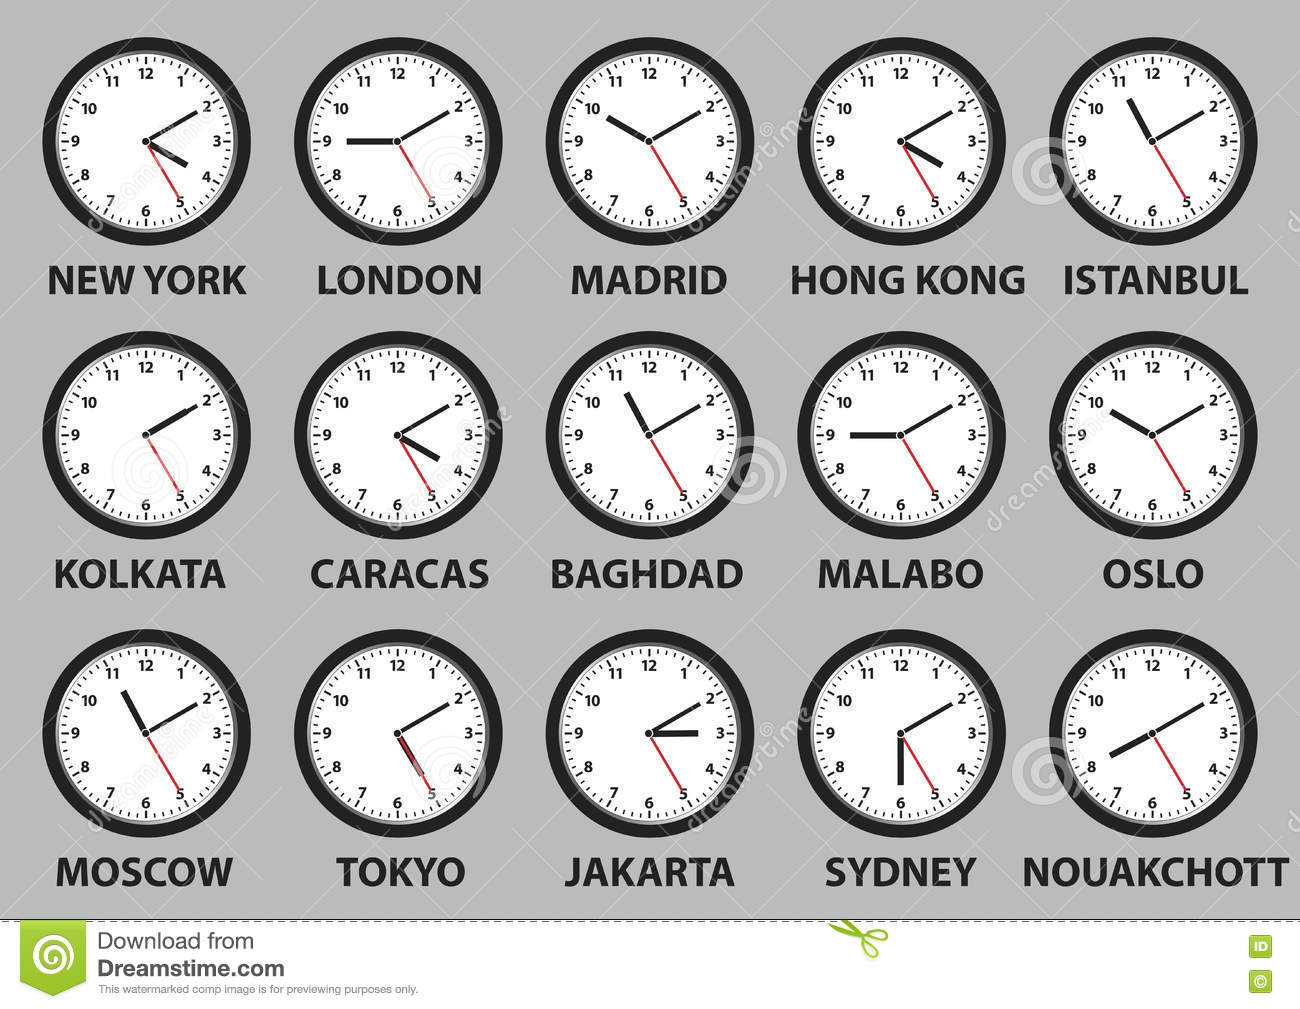 Clock Faces With Time Differences In Some World Cities ...